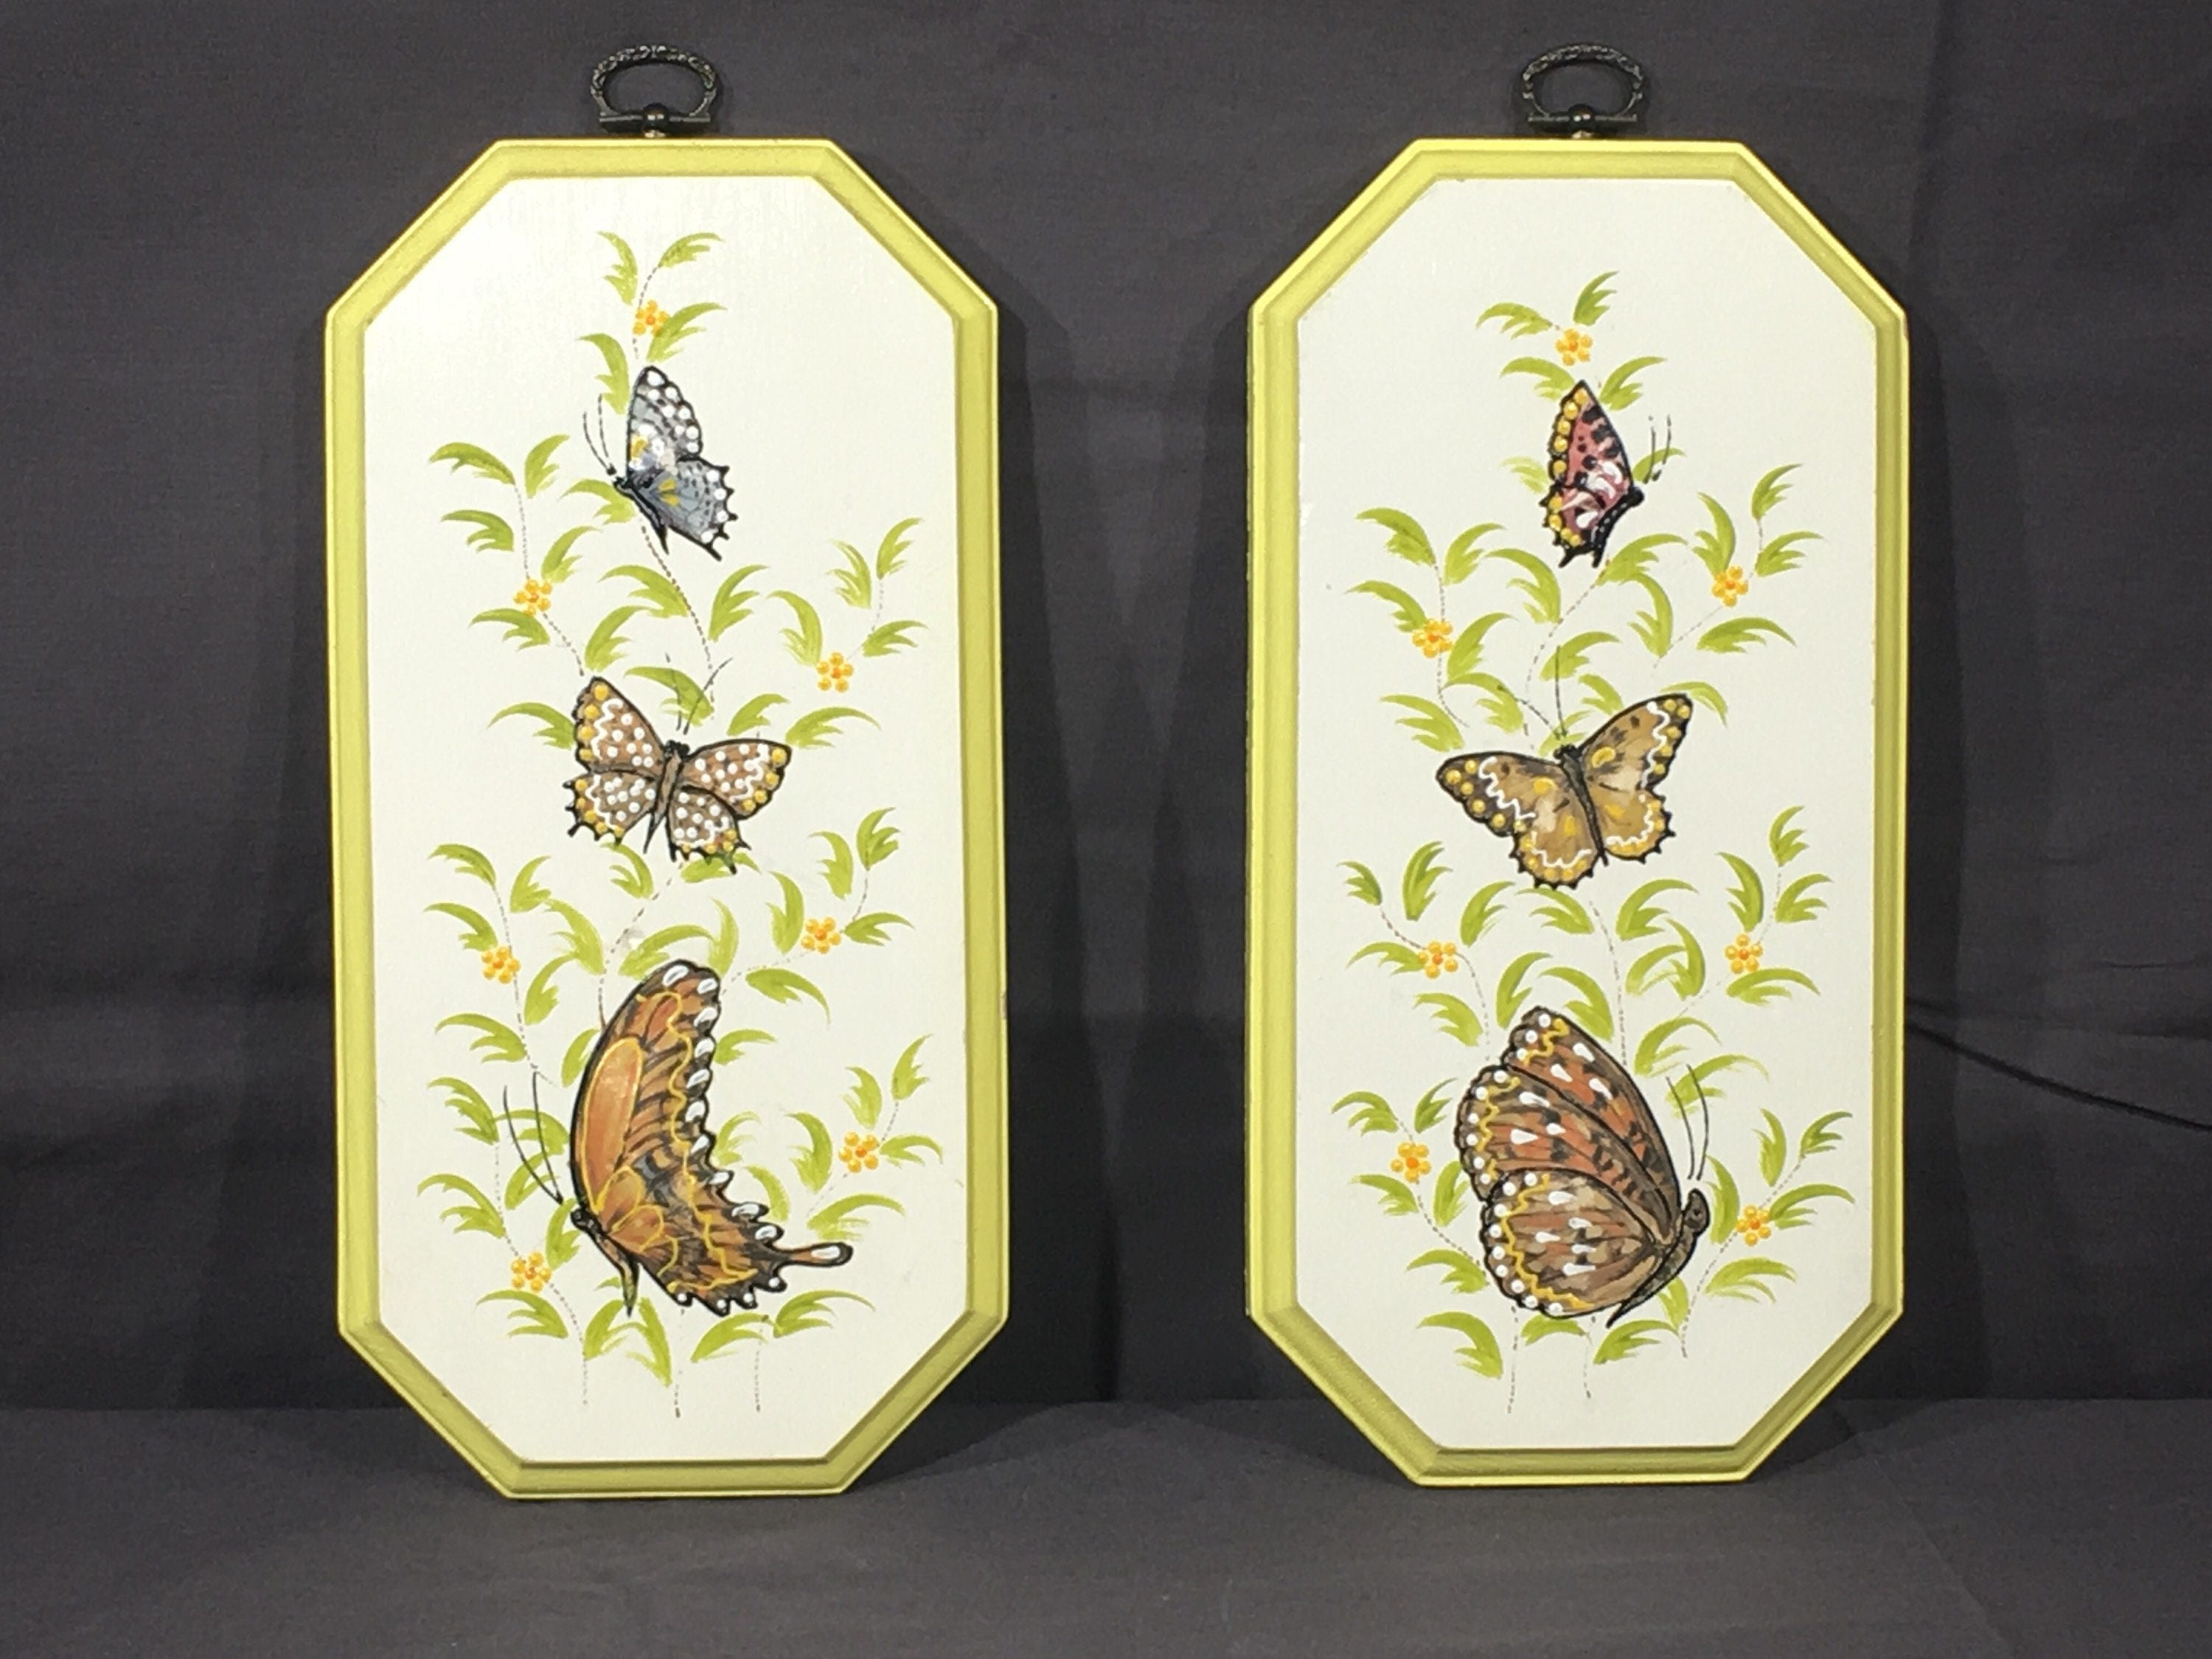 Vintage Butterfly Paintings (2), Wooden Wall Hanging Decor, White ...